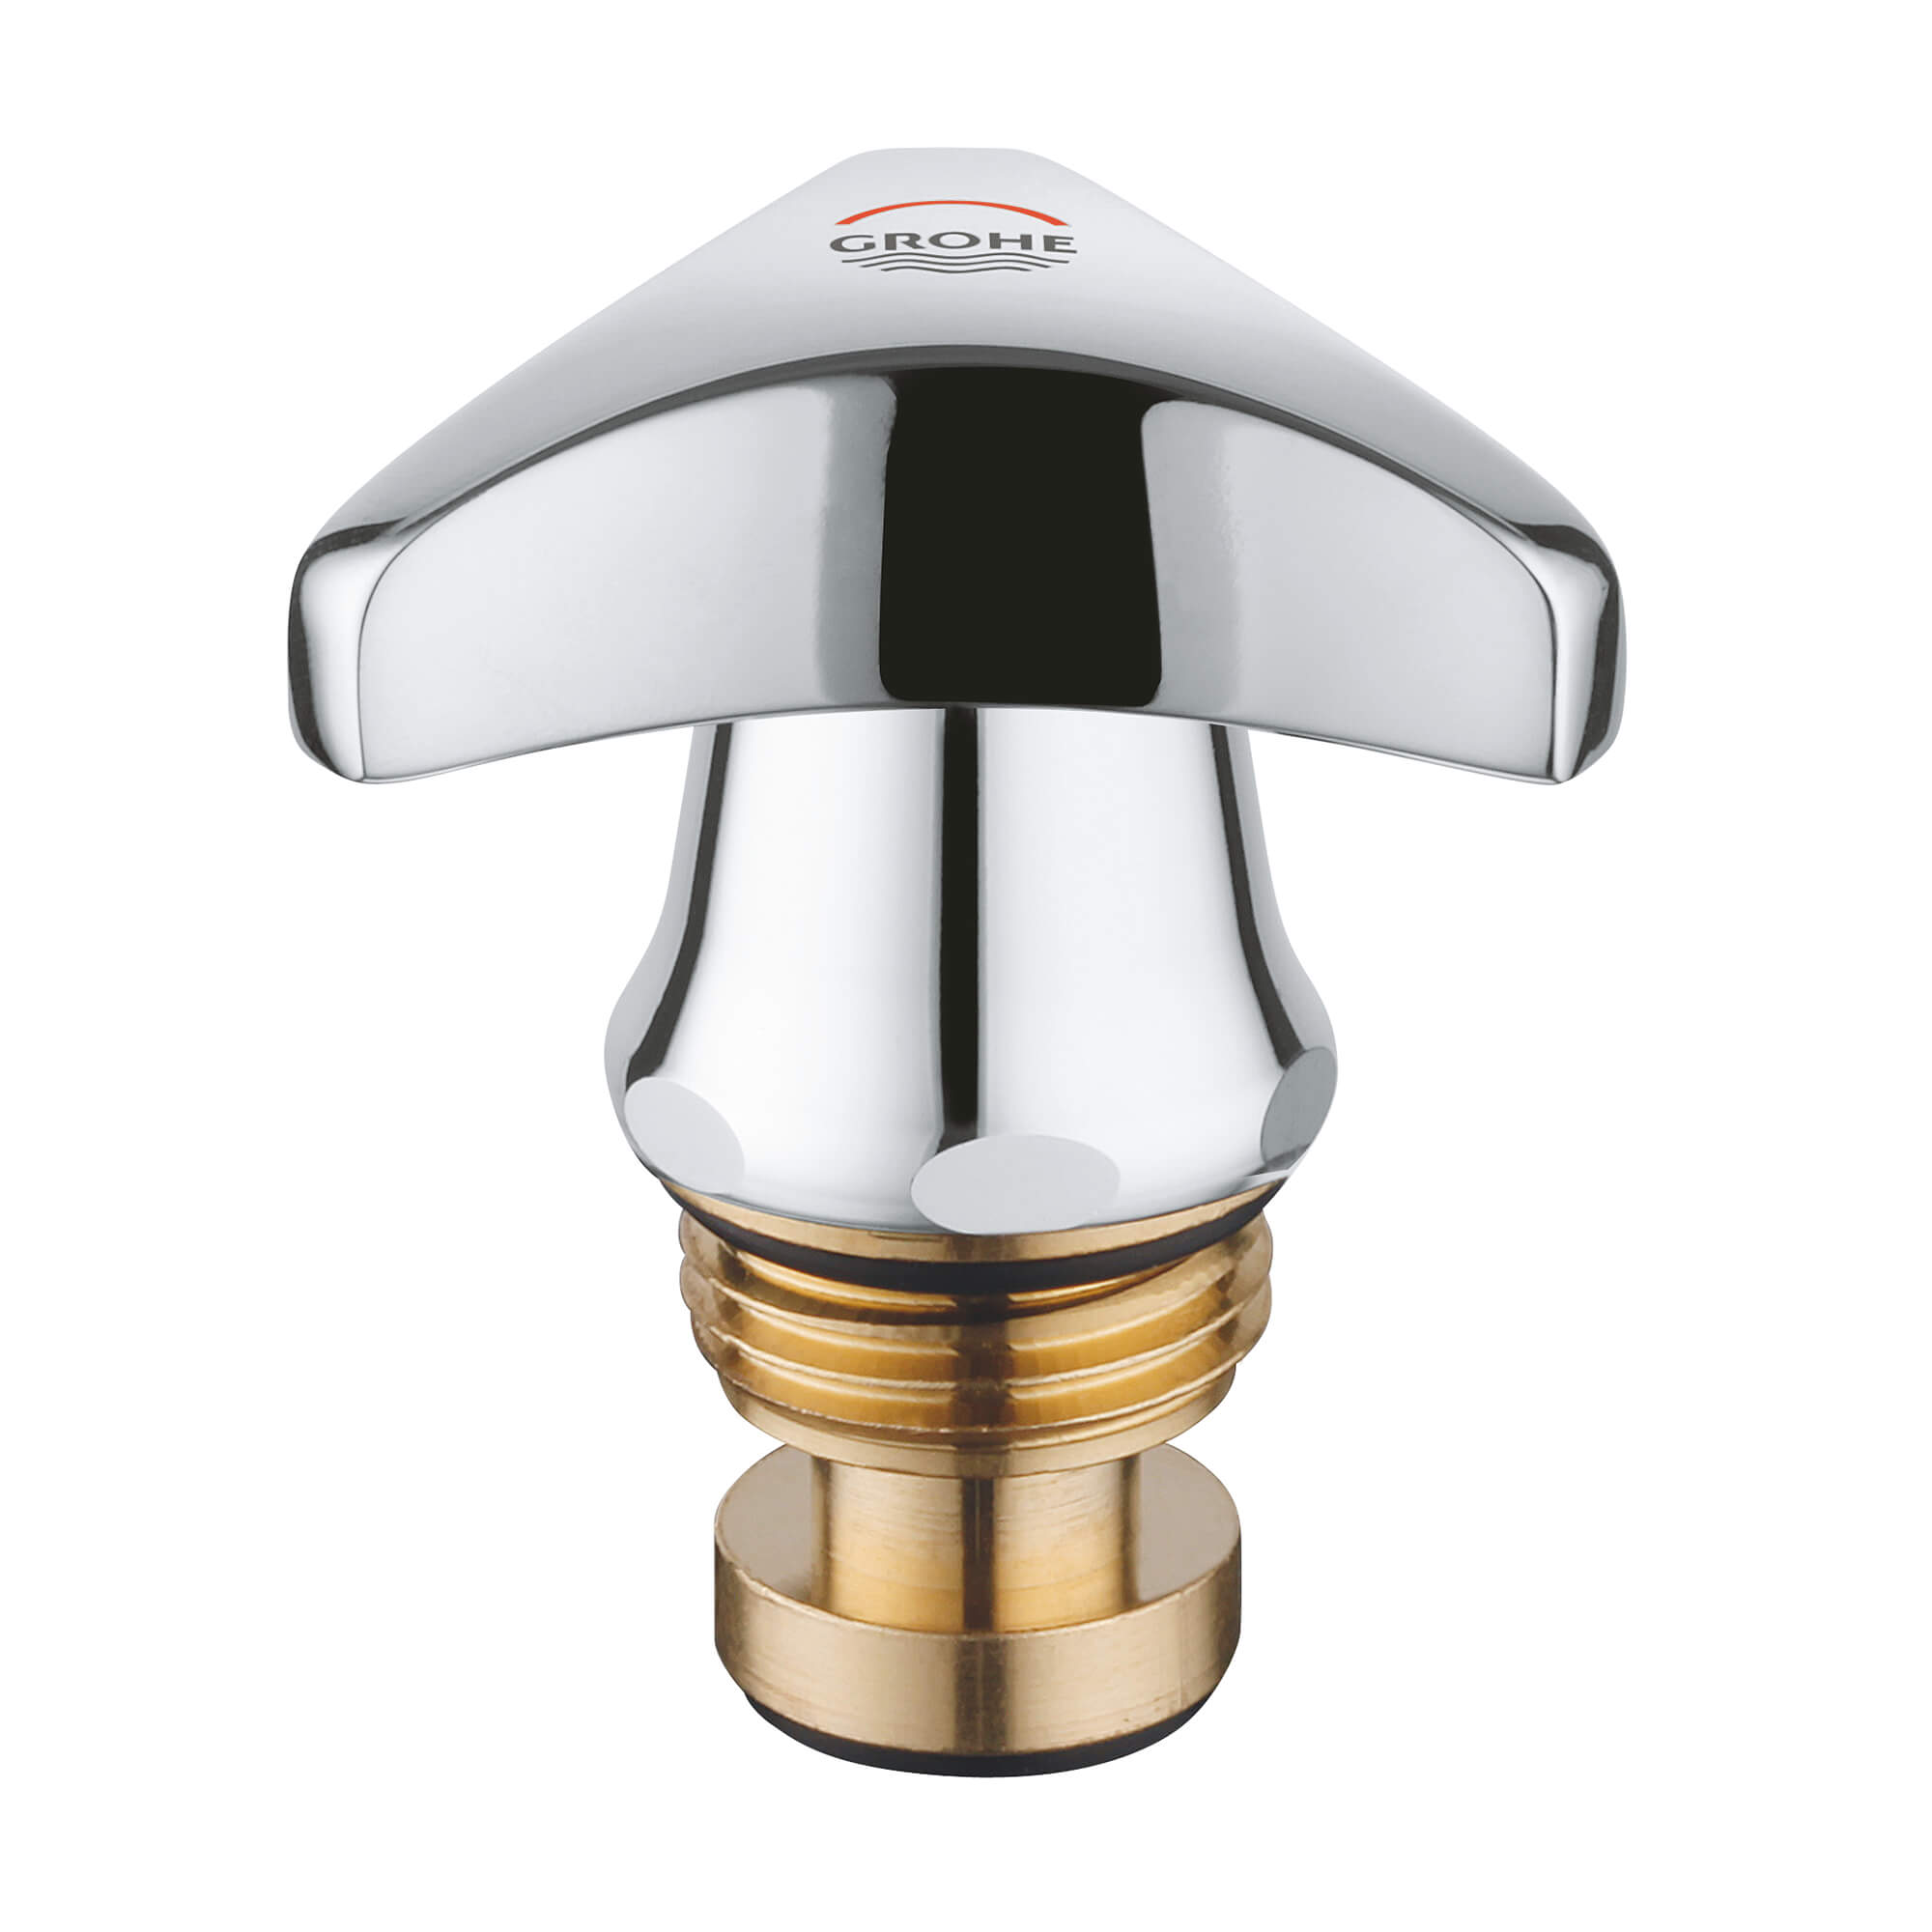 Headpart Red GROHE CHROME